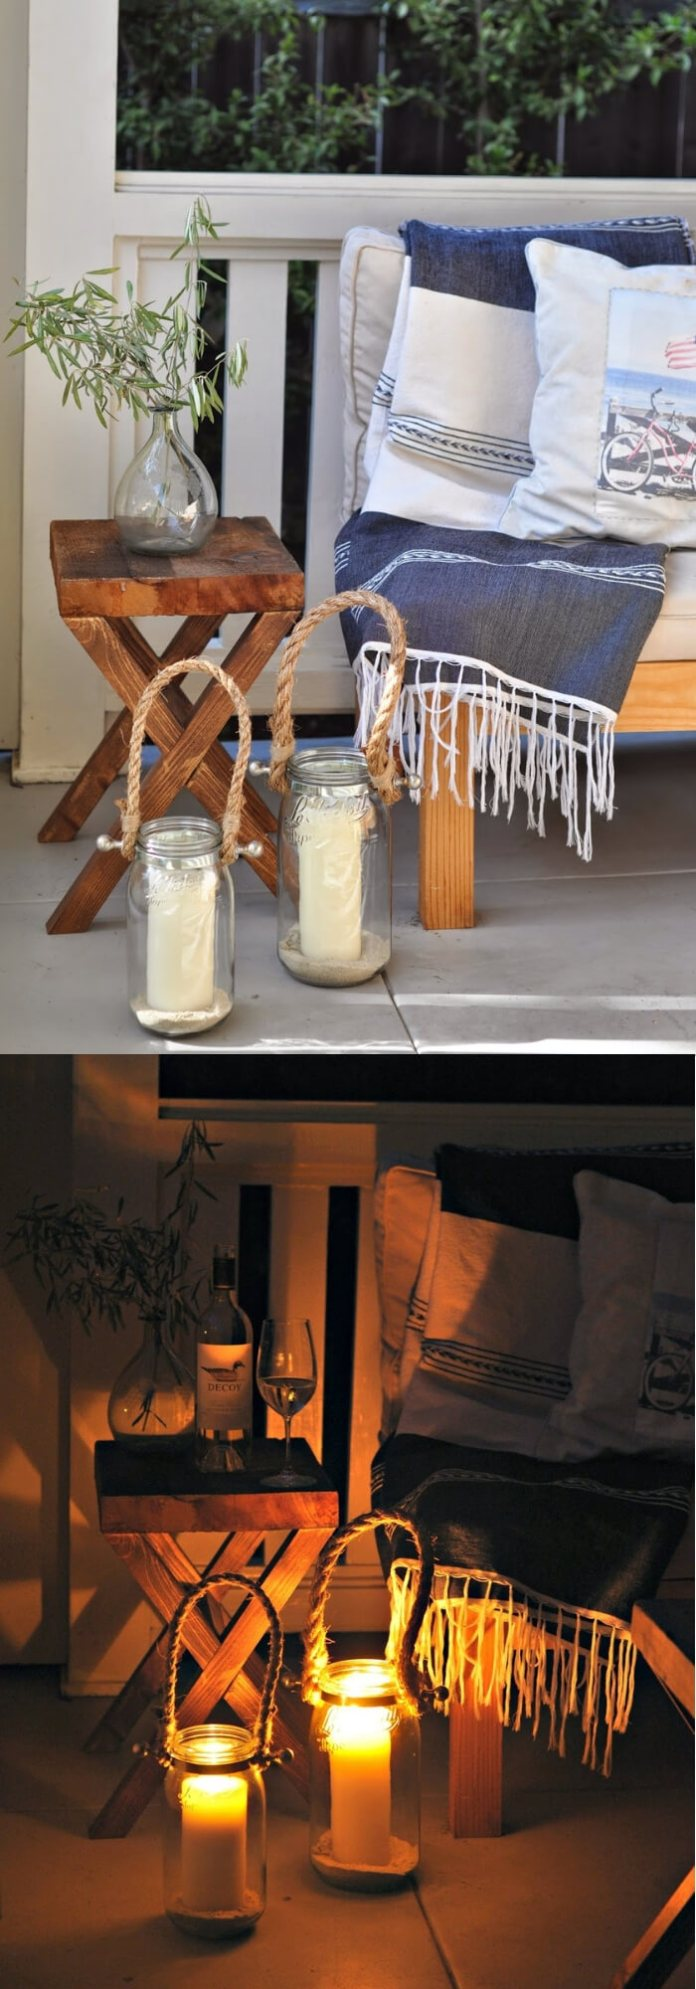 Pottery Barn Inspired Hyannis Lanterns | Trending & Vintage Porch Lighting Ideas & Designs | FarmFoodFamily.com